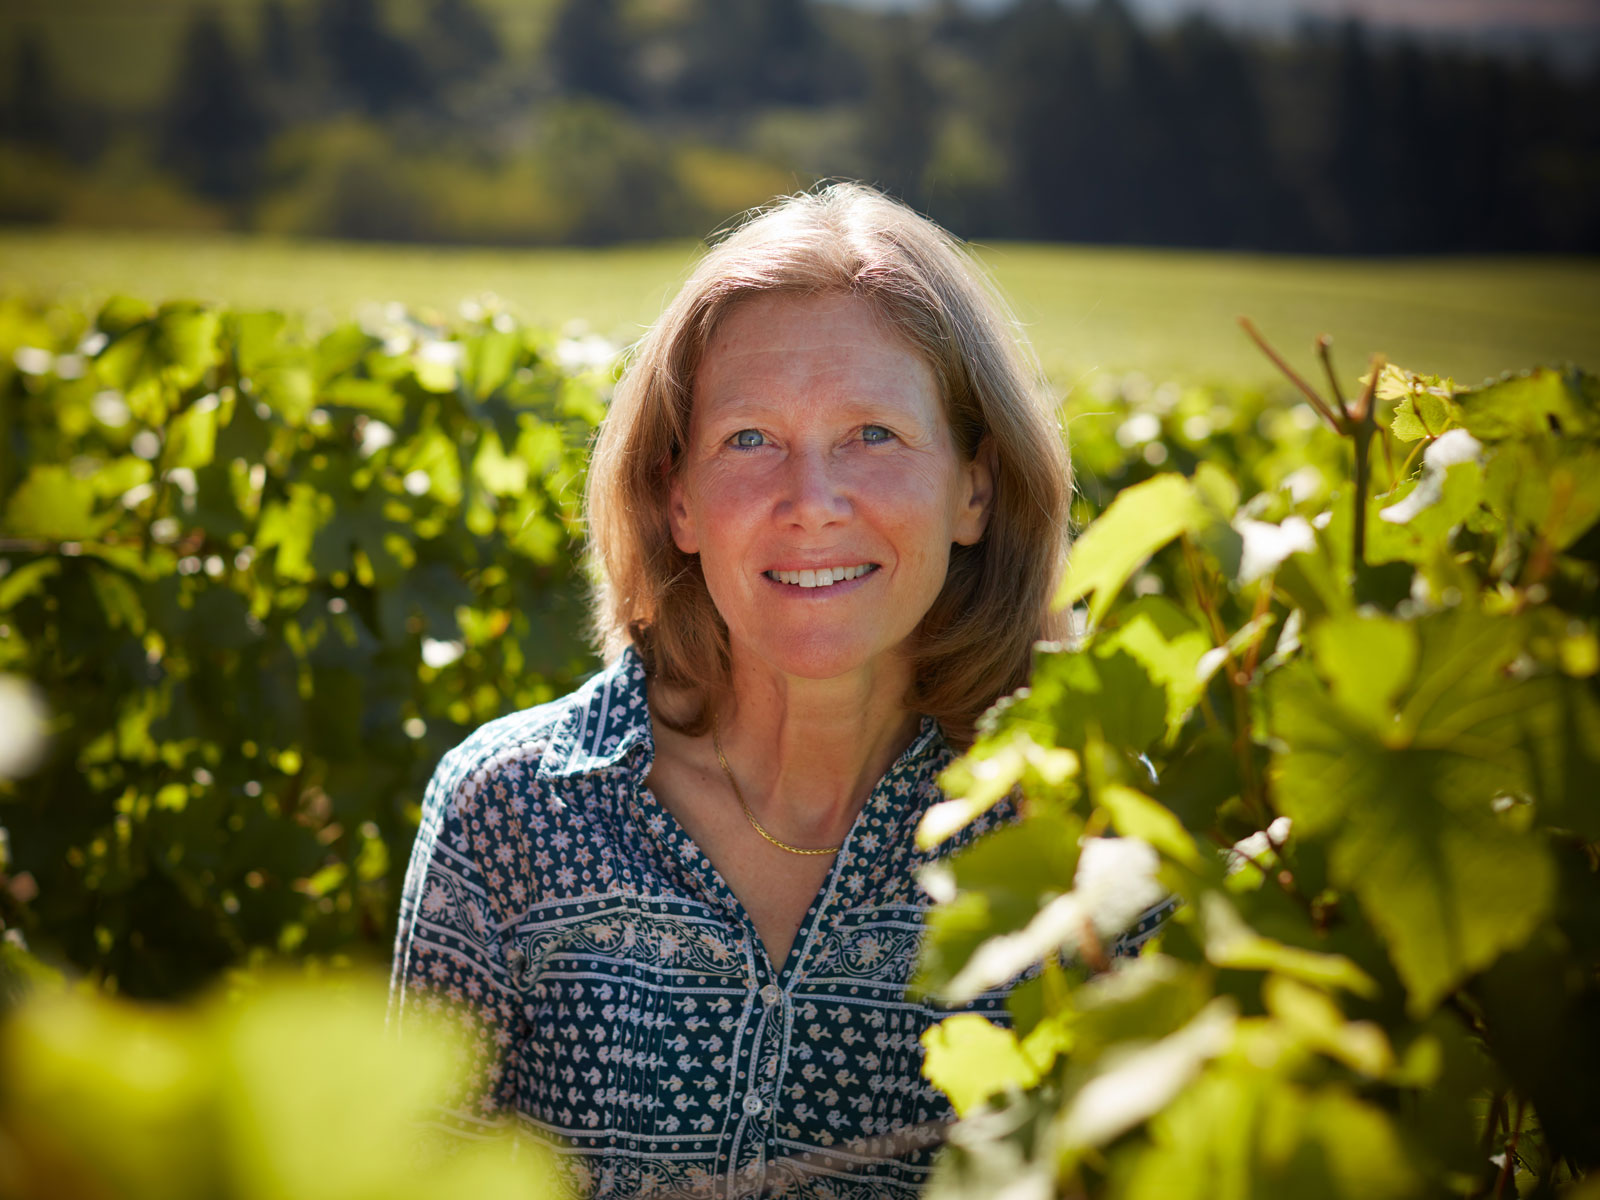 19. Veronique Drouhin-Boss, Winemaker at Domaine Drouhin